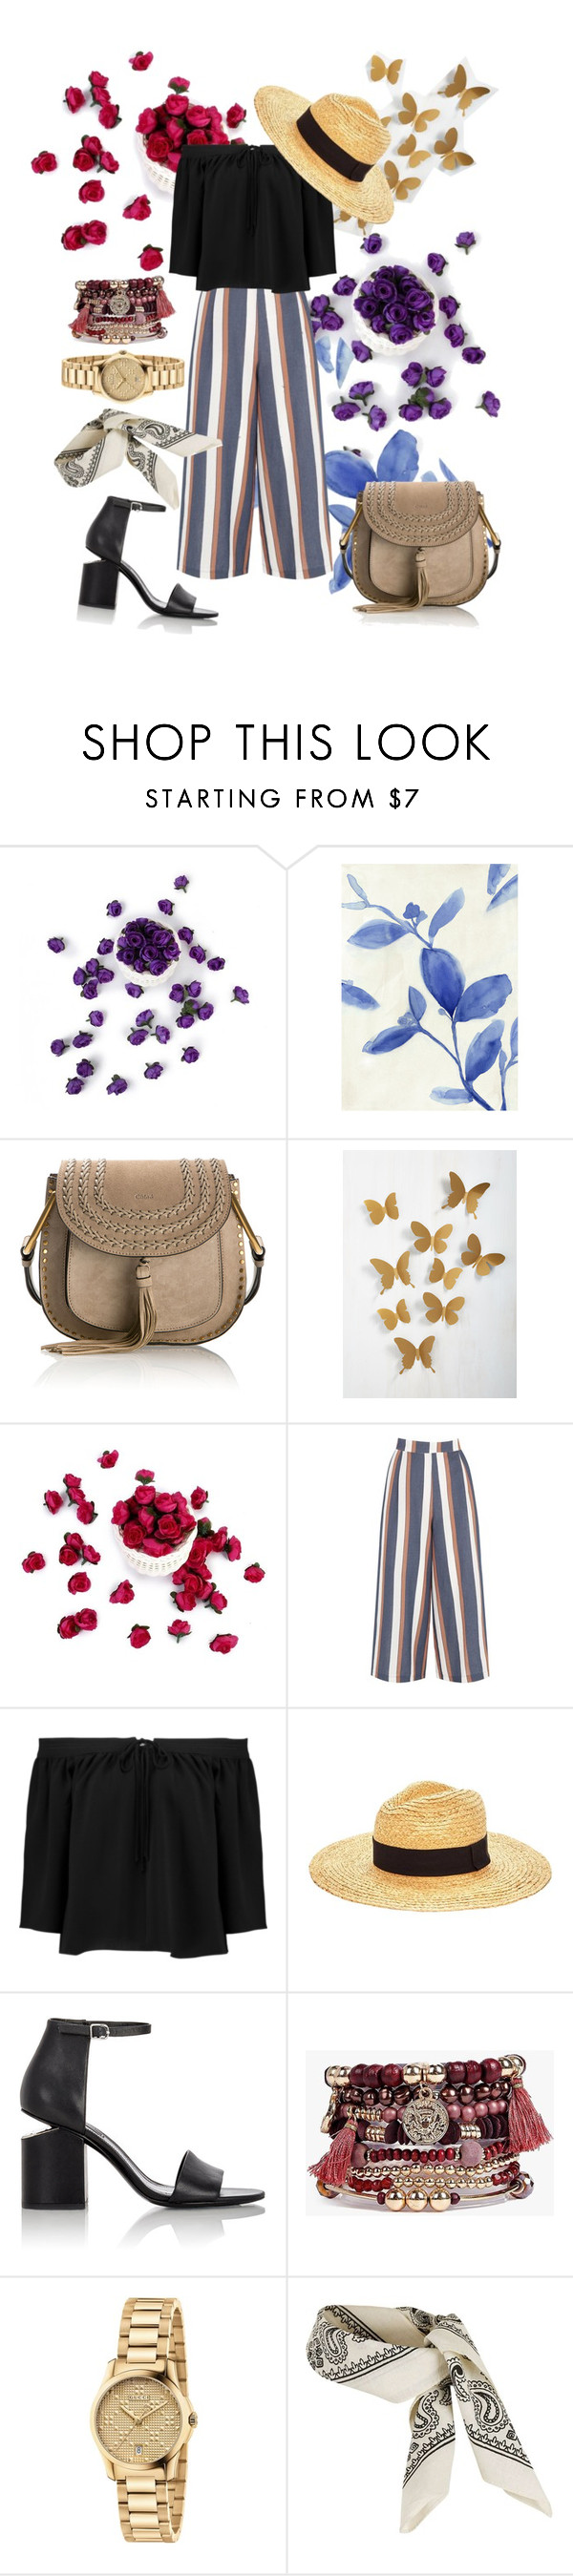 """""""Natural"""" by souljuicex1201 ❤ liked on Polyvore featuring Barclay Butera, Chloé, Warehouse, Elizabeth and James, Glamorous, Alexander Wang, Boohoo, Gucci and Topshop"""